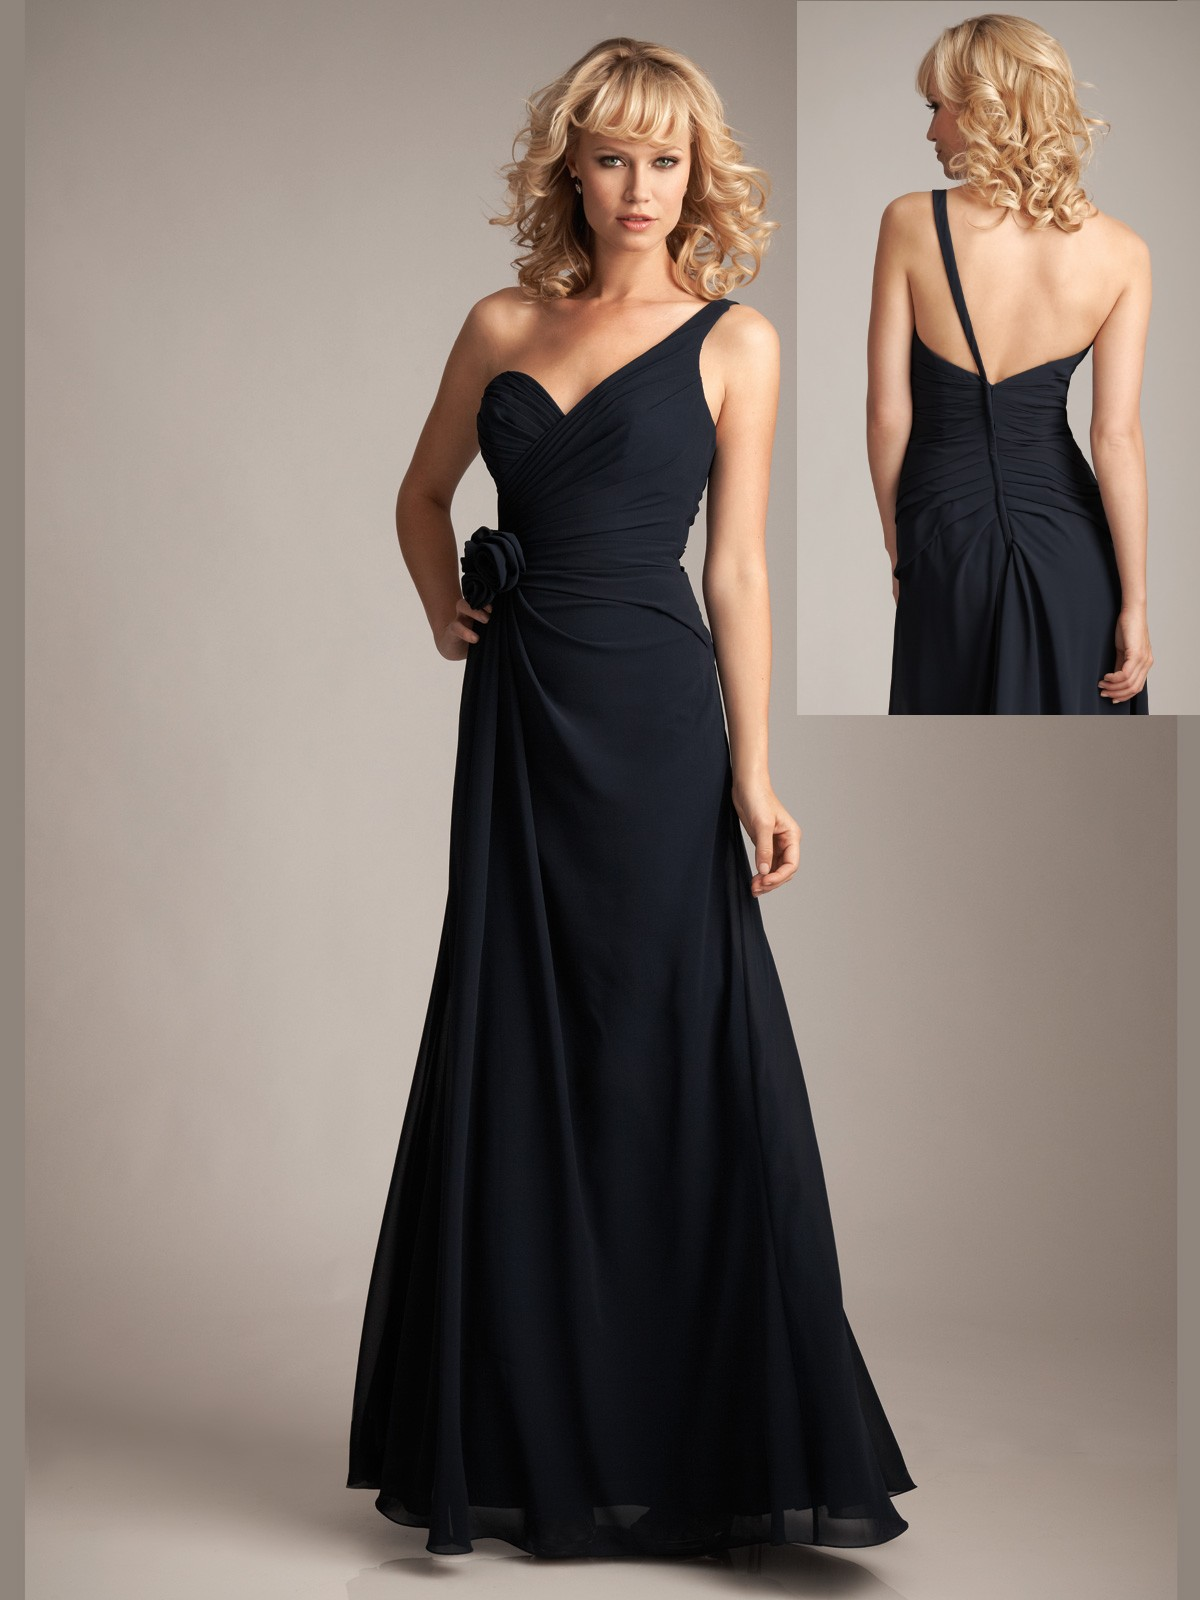 Black bridesmaid dresses black one strap bridesmaid dress ombrellifo Image collections